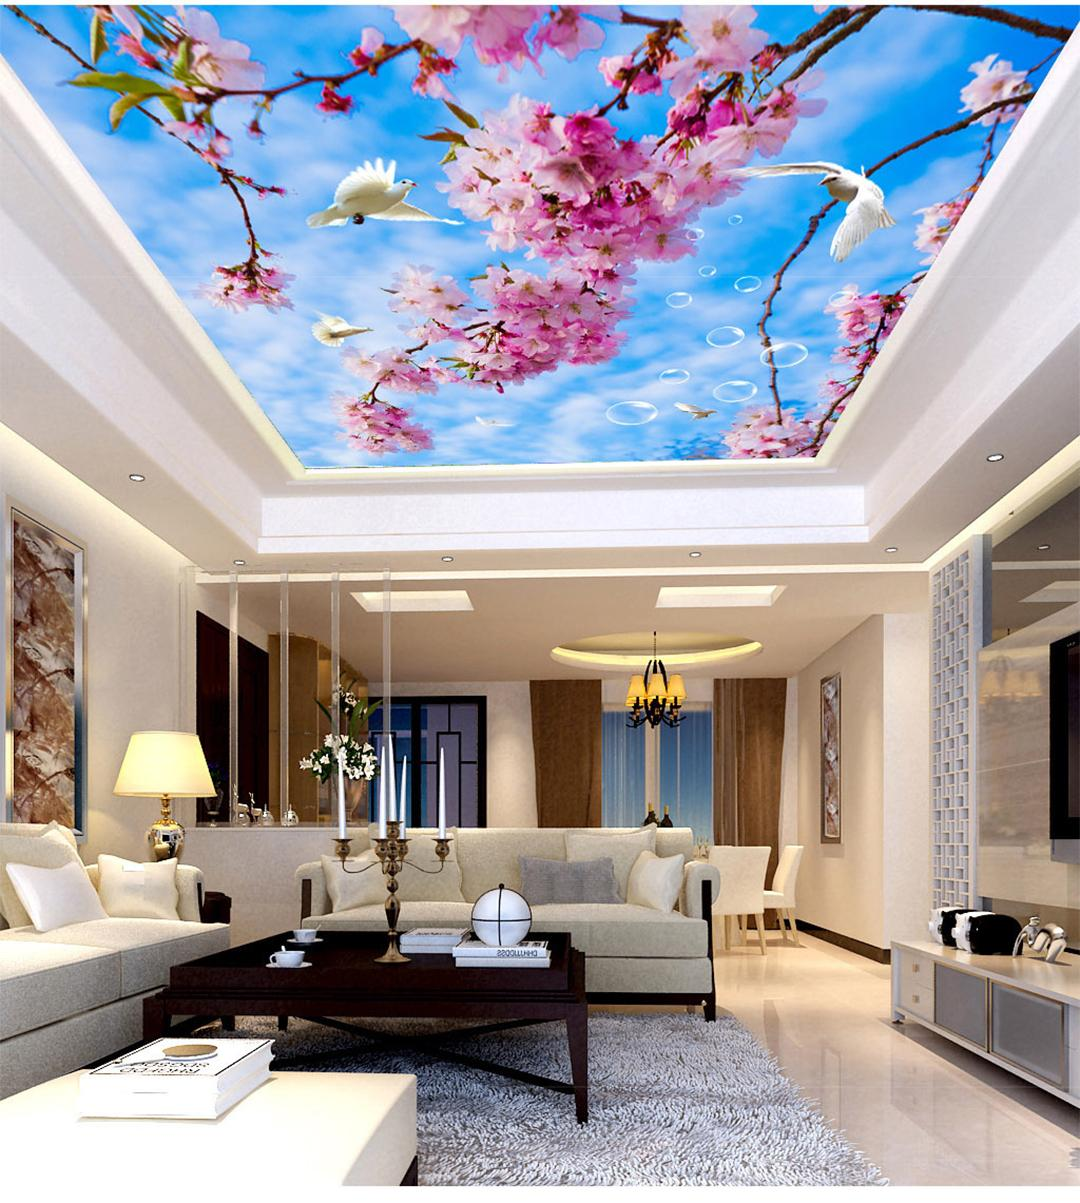 Custom Retail Blue Sky White Clouds Cherry Blossoms Zenith Murals Sunny White Clouds Long Birds Flying Murals